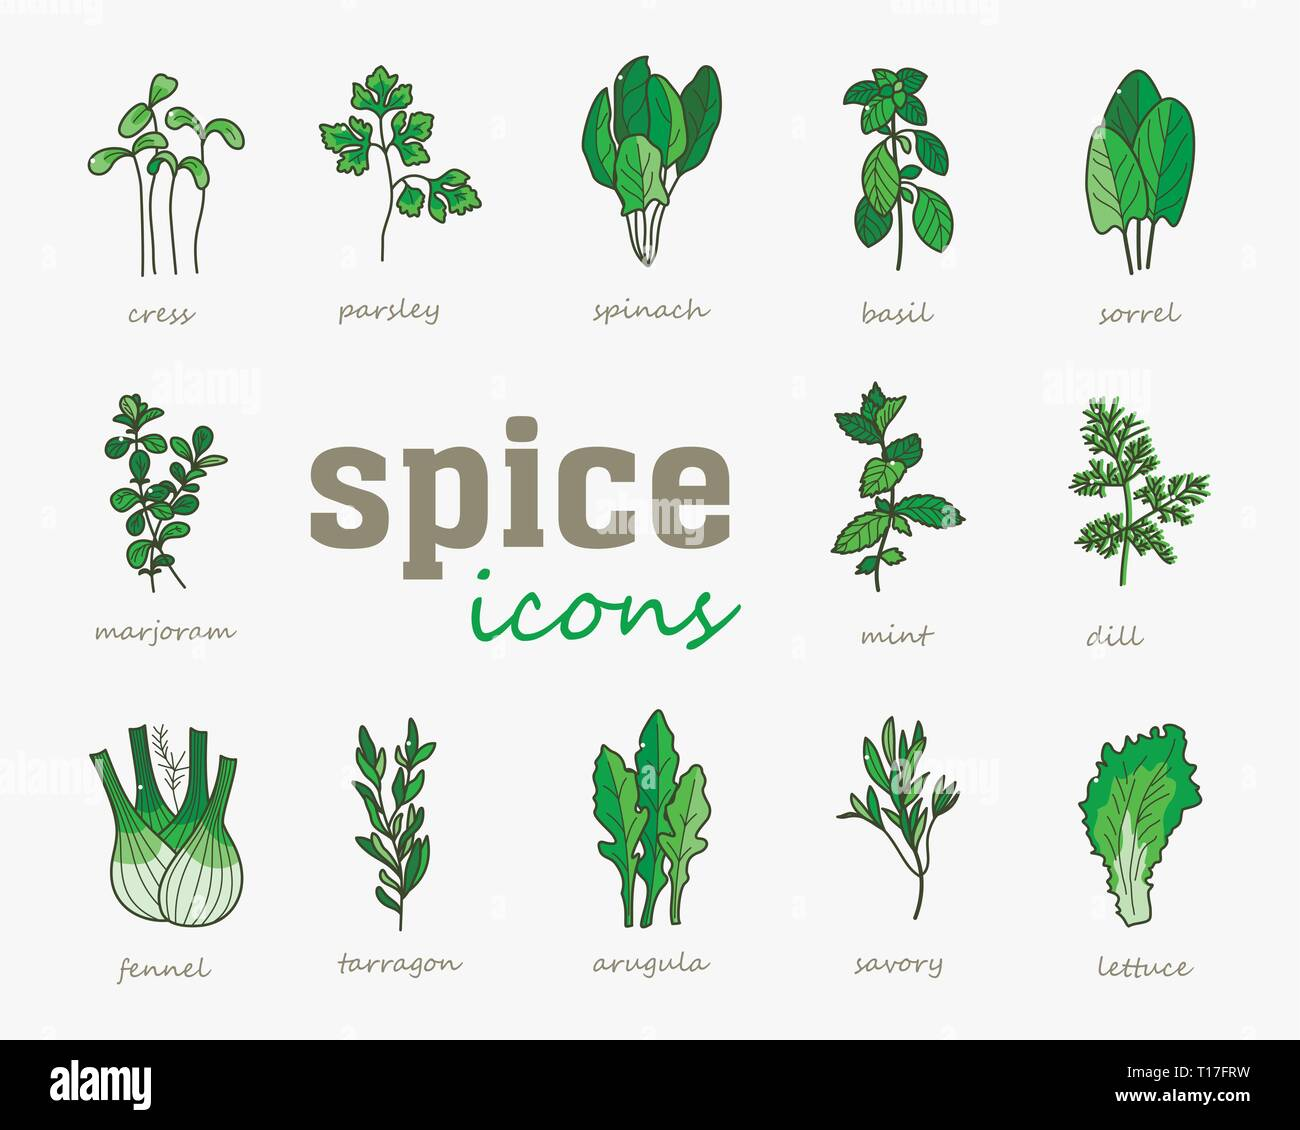 Greenery vector icon. Vegetable green leaves. Culinary herb spice for cooking, medical, gardening design. Organic product flavor ingredient for label, - Stock Vector